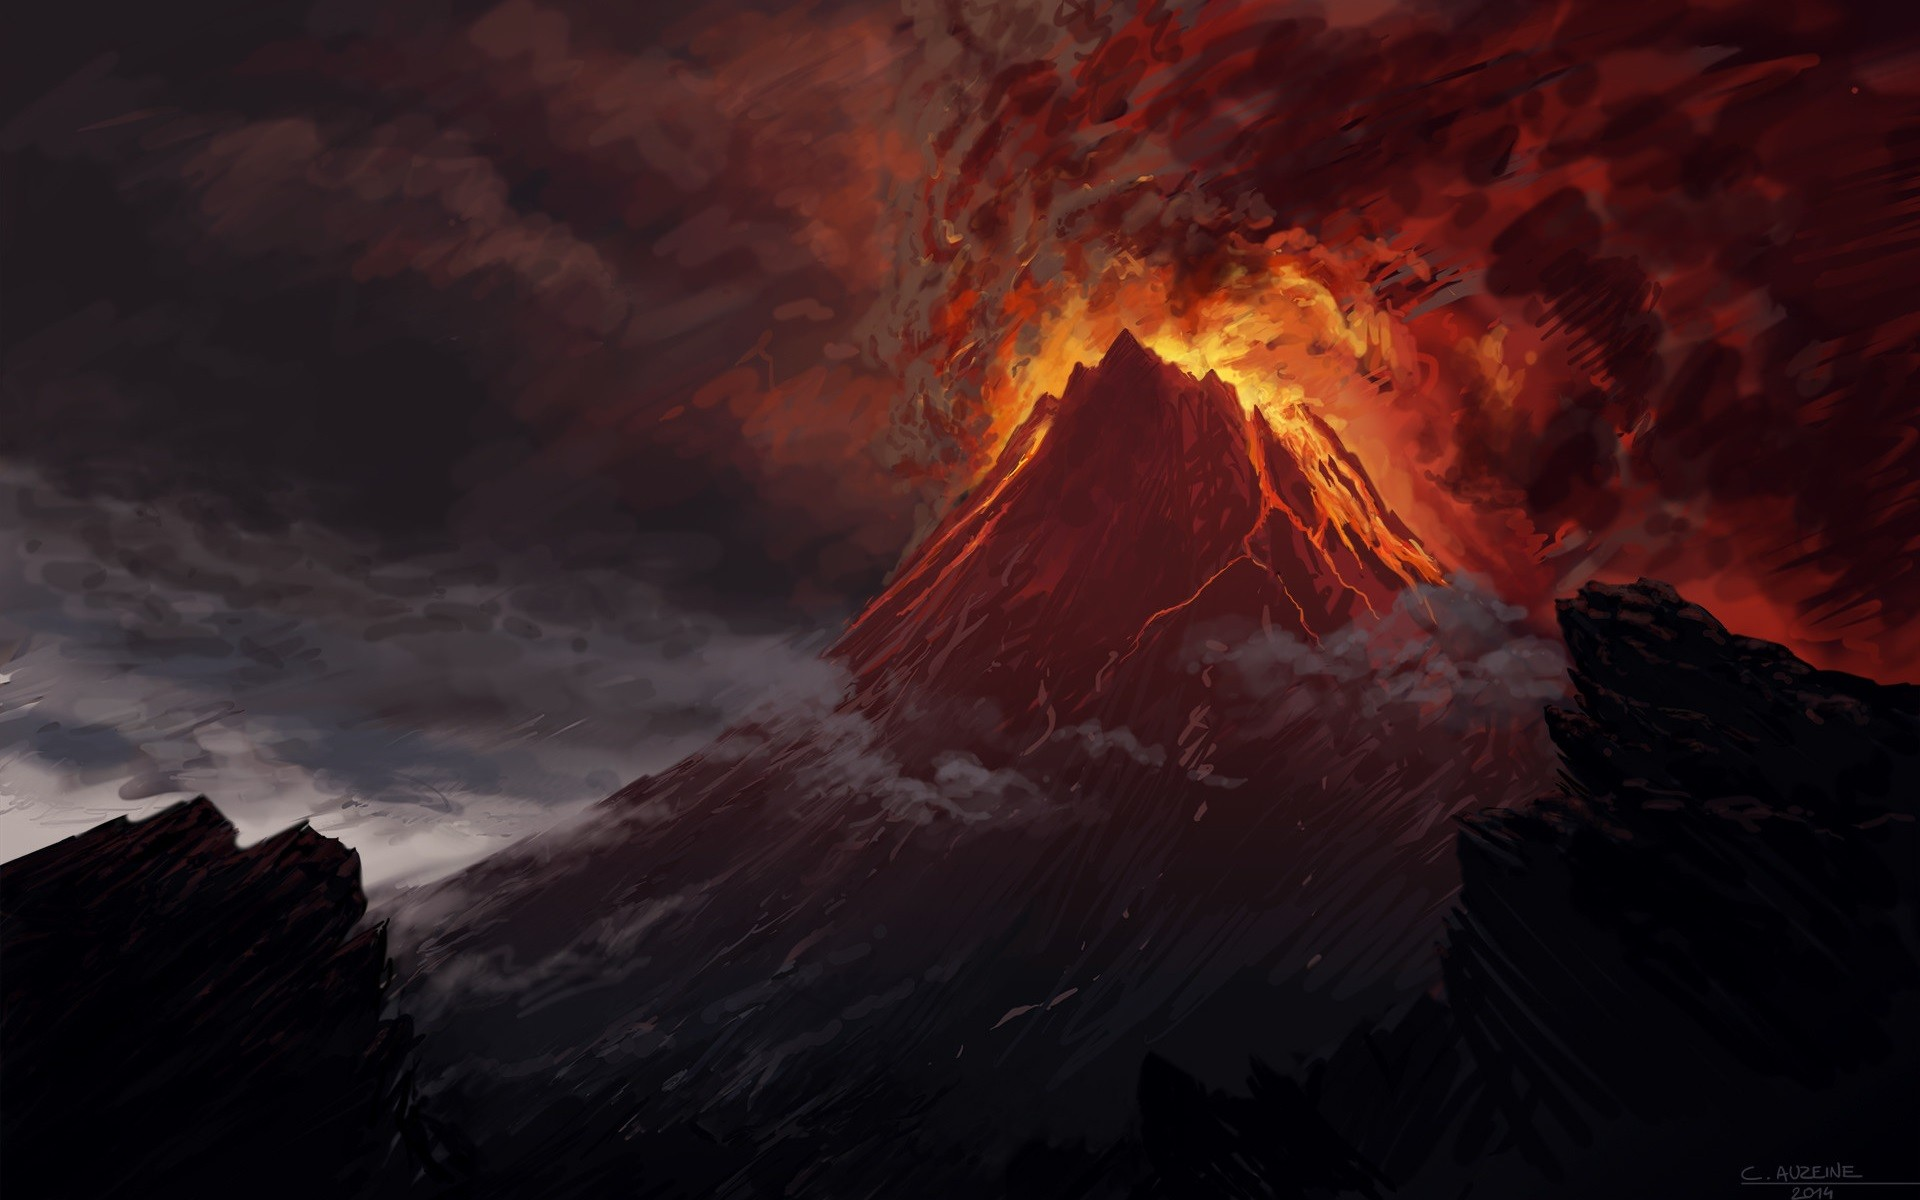 General 1920x1200 Mount Doom volcano The Lord of the Rings artwork lava Mordor